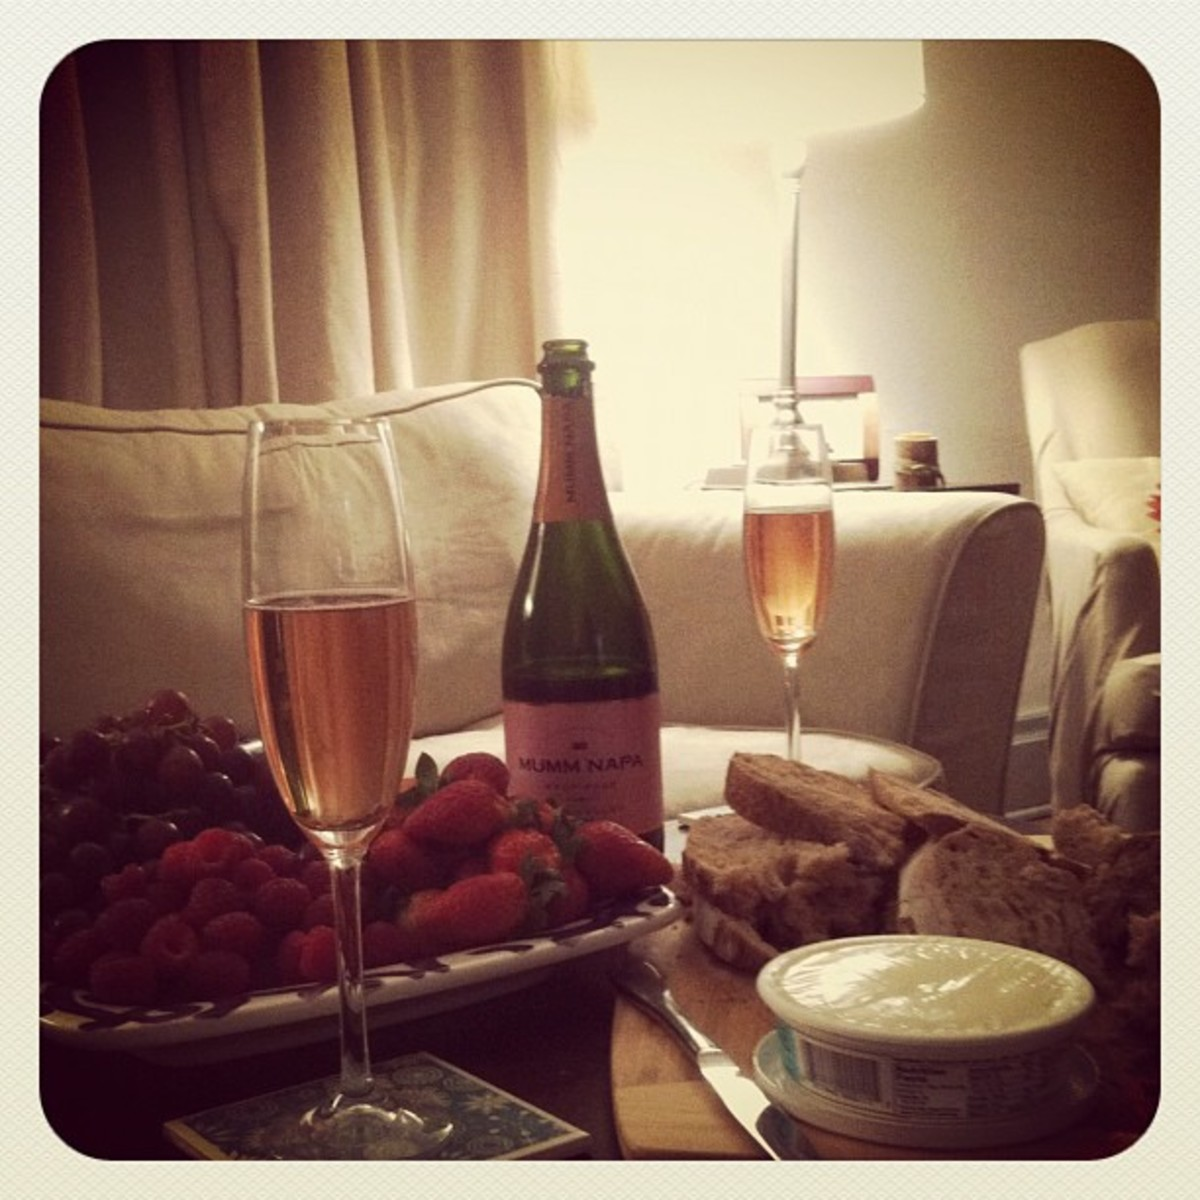 Date Night Have A Romantic Night At Home